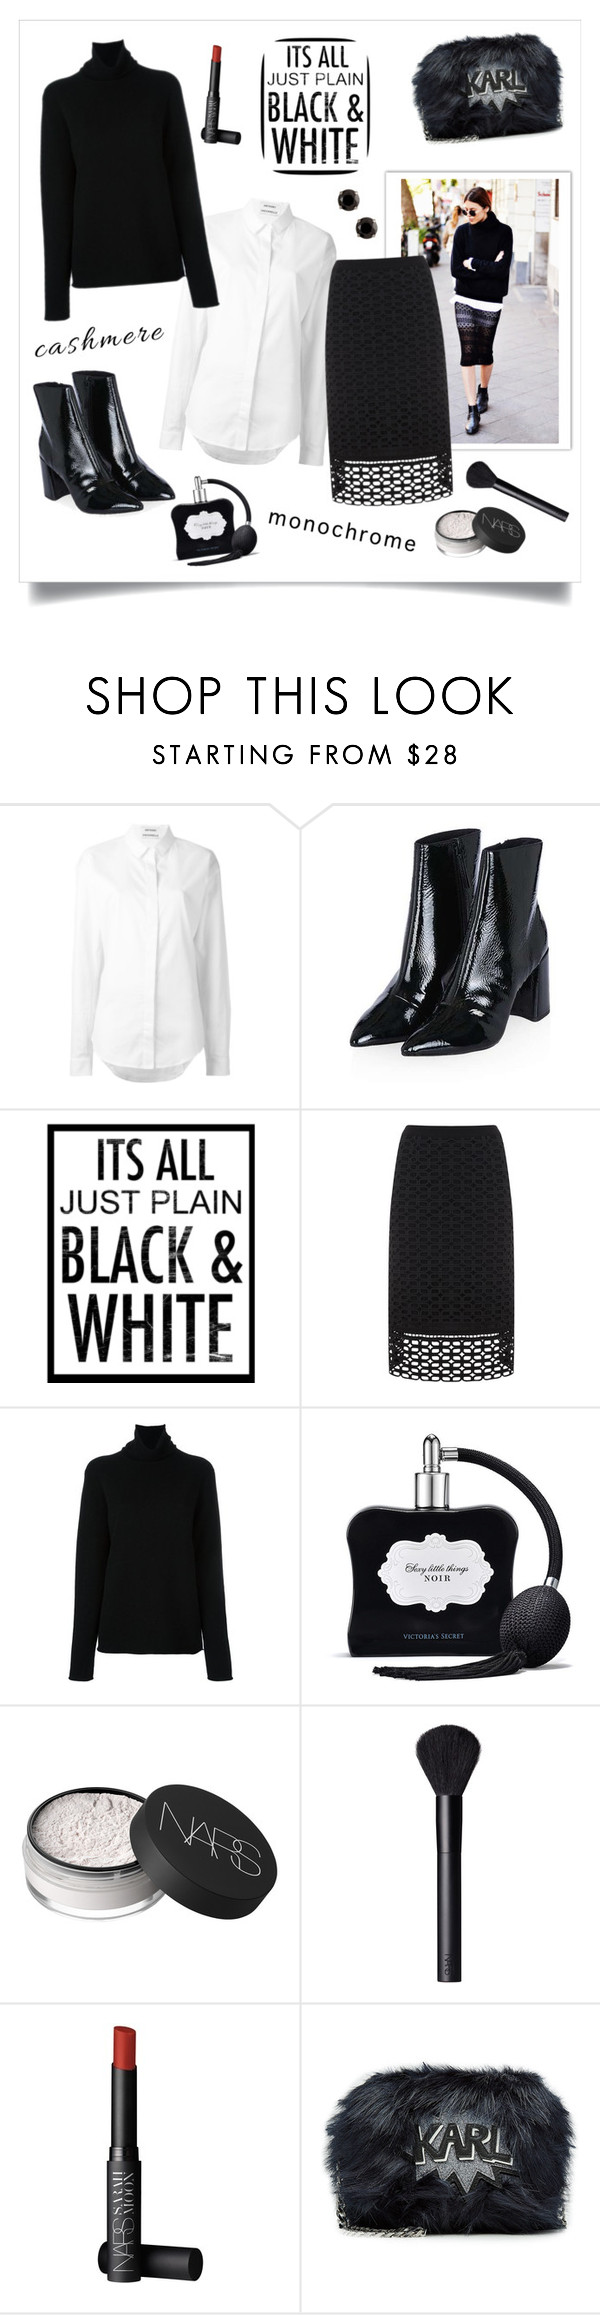 """Cashmere!"" by diane1234 ❤ liked on Polyvore featuring Anthony Vaccarello, Topshop, Mint Velvet, Chloé, Victoria's Secret, NARS Cosmetics and Karl Lagerfeld"